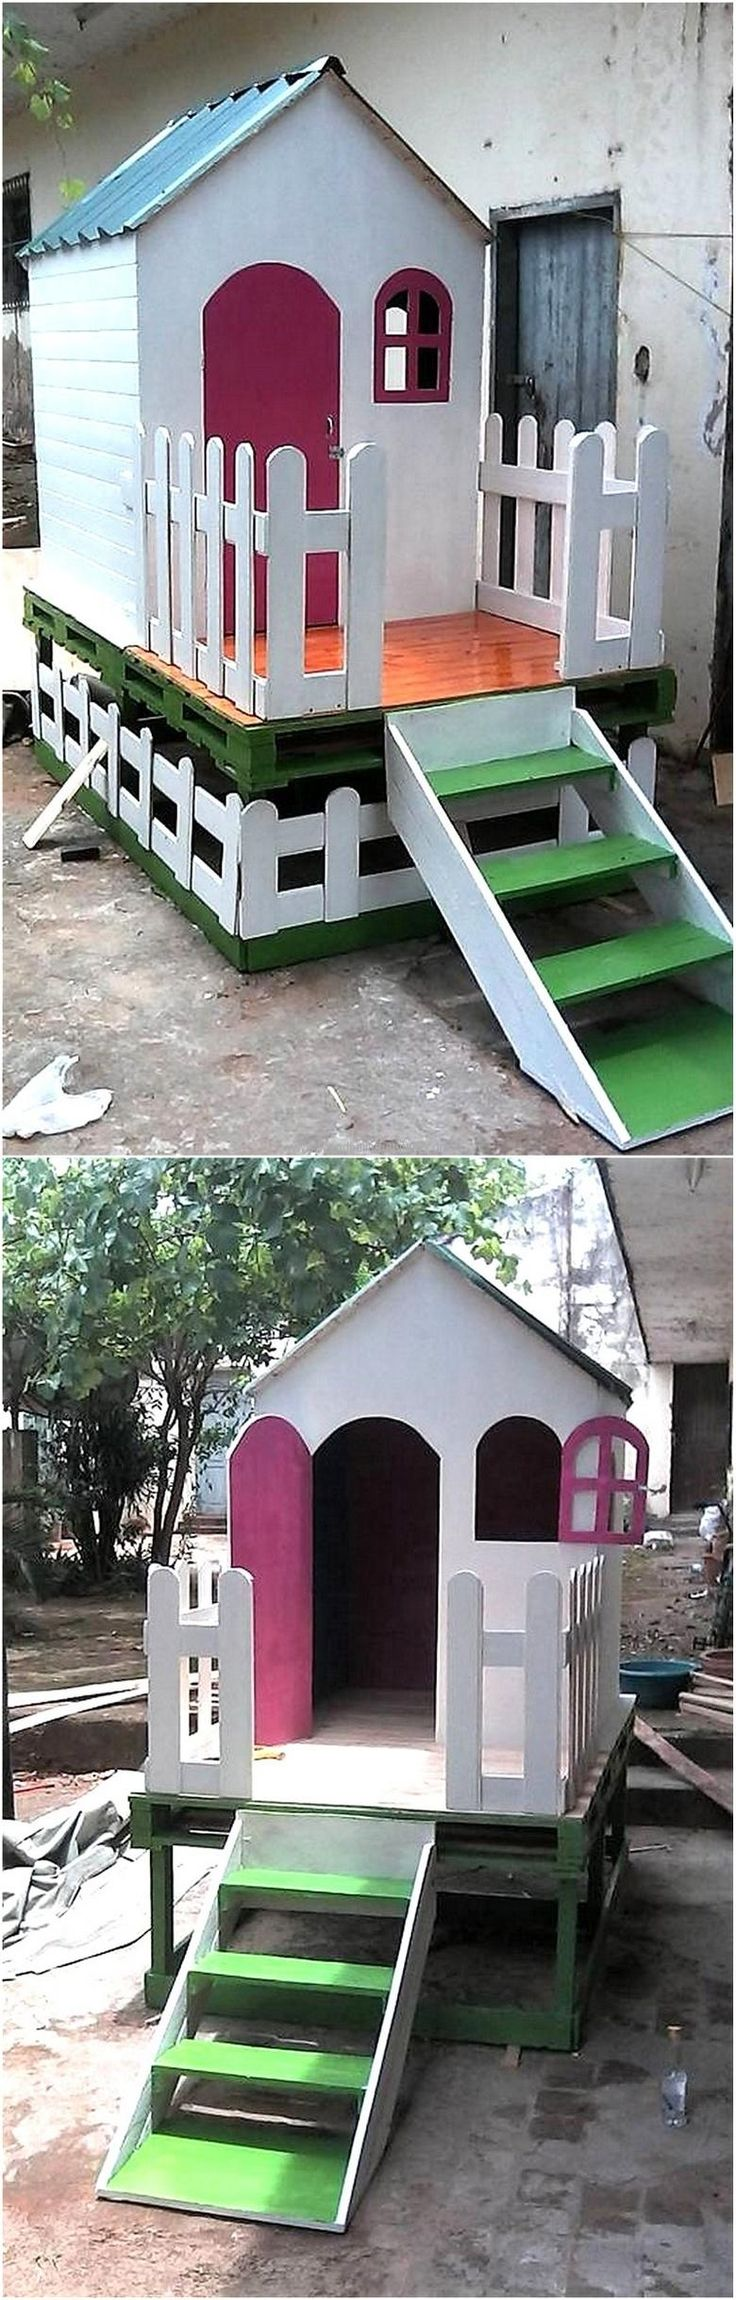 We never forget the kids when we start collecting the images of the items created with the pallets, so here we are with the idea for kid's playhouse. It is a different idea because it contains the stairs, making it look like a real house.